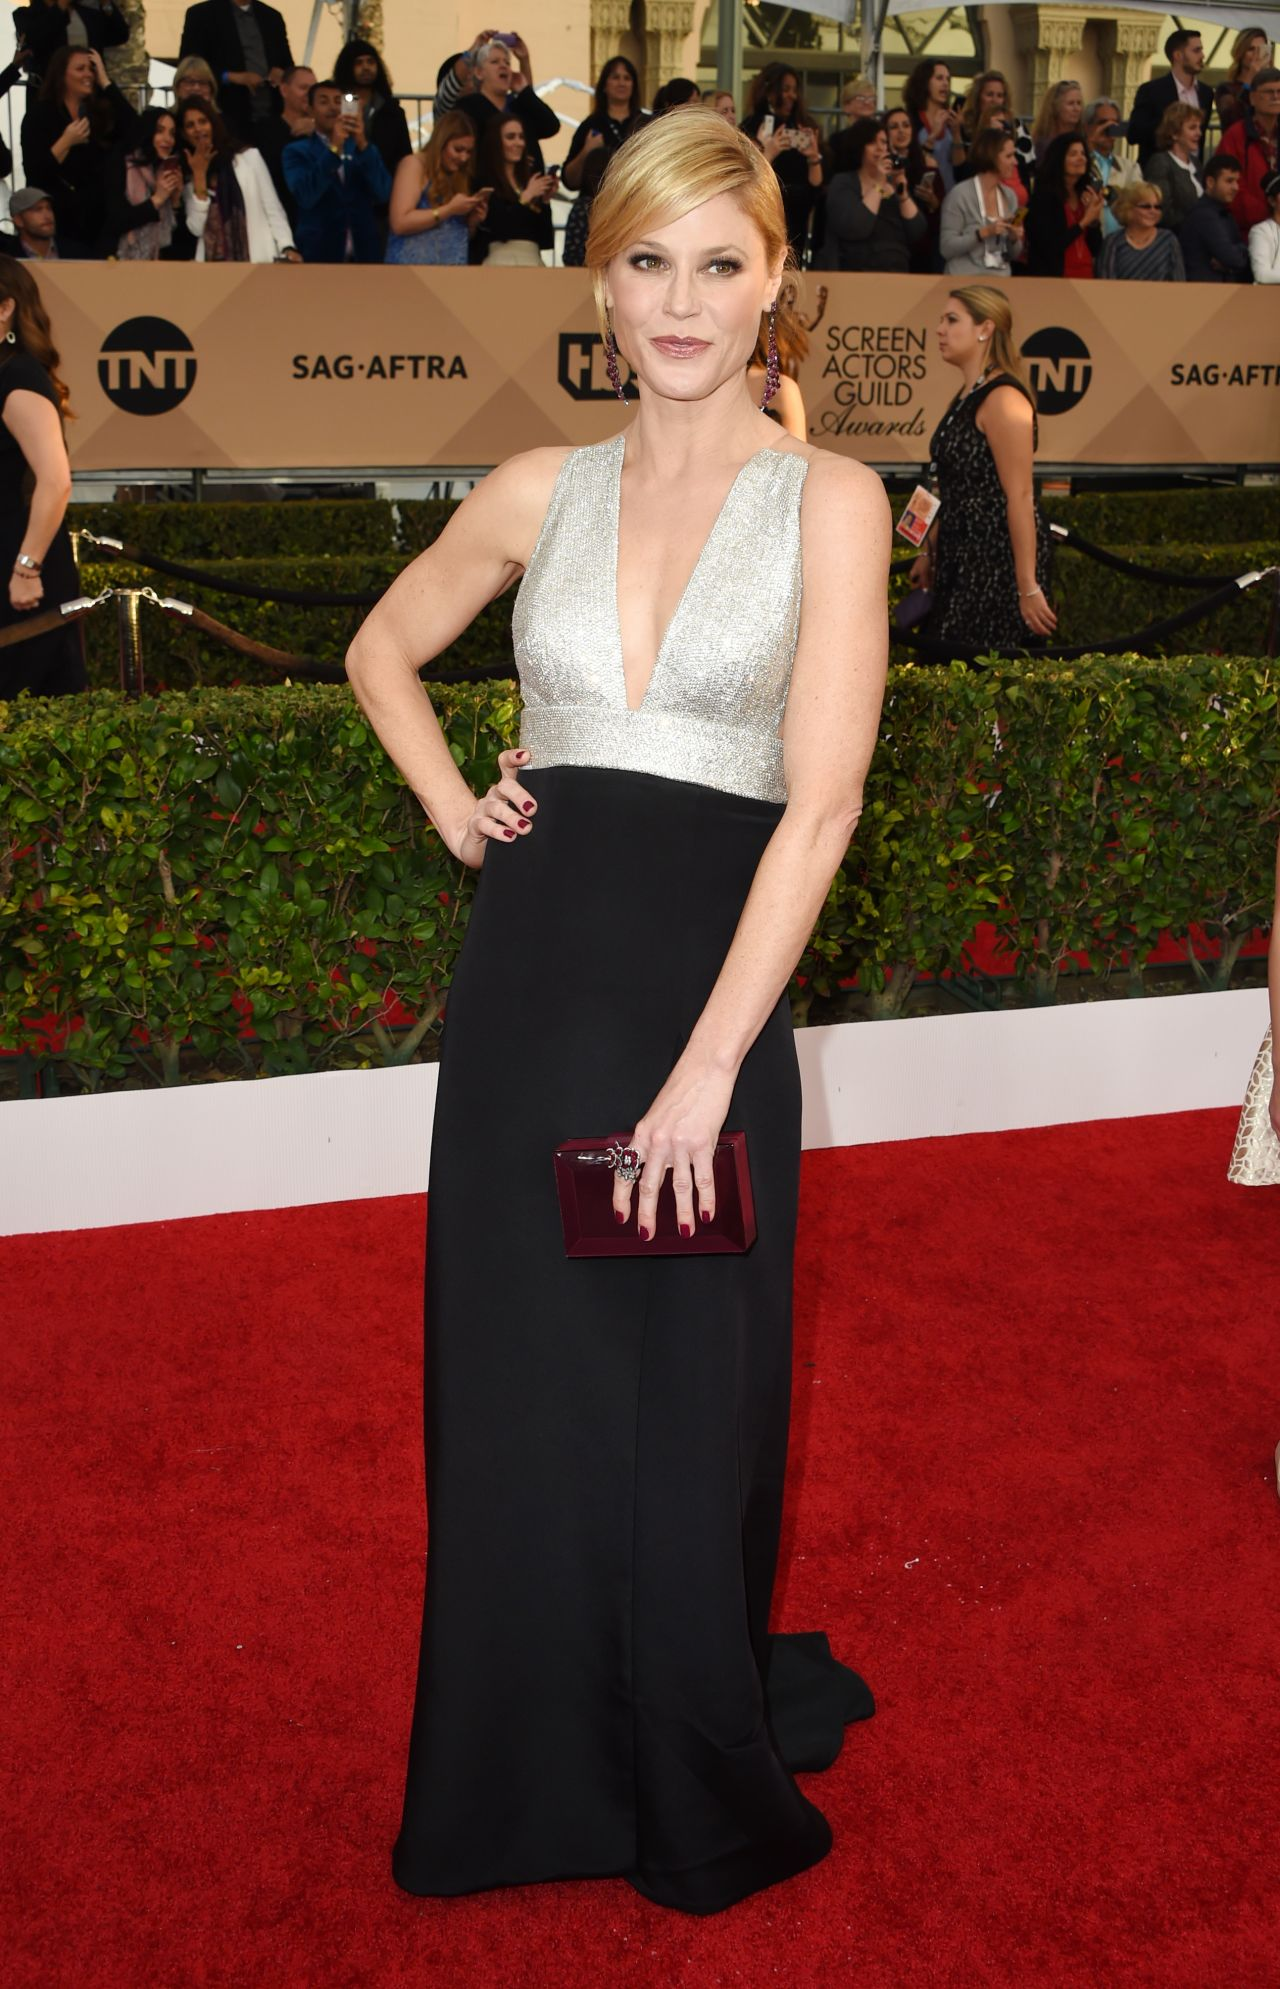 julie-bowen-sag-awards-2016-at-shrine-auditorium-in-los-angeles-4